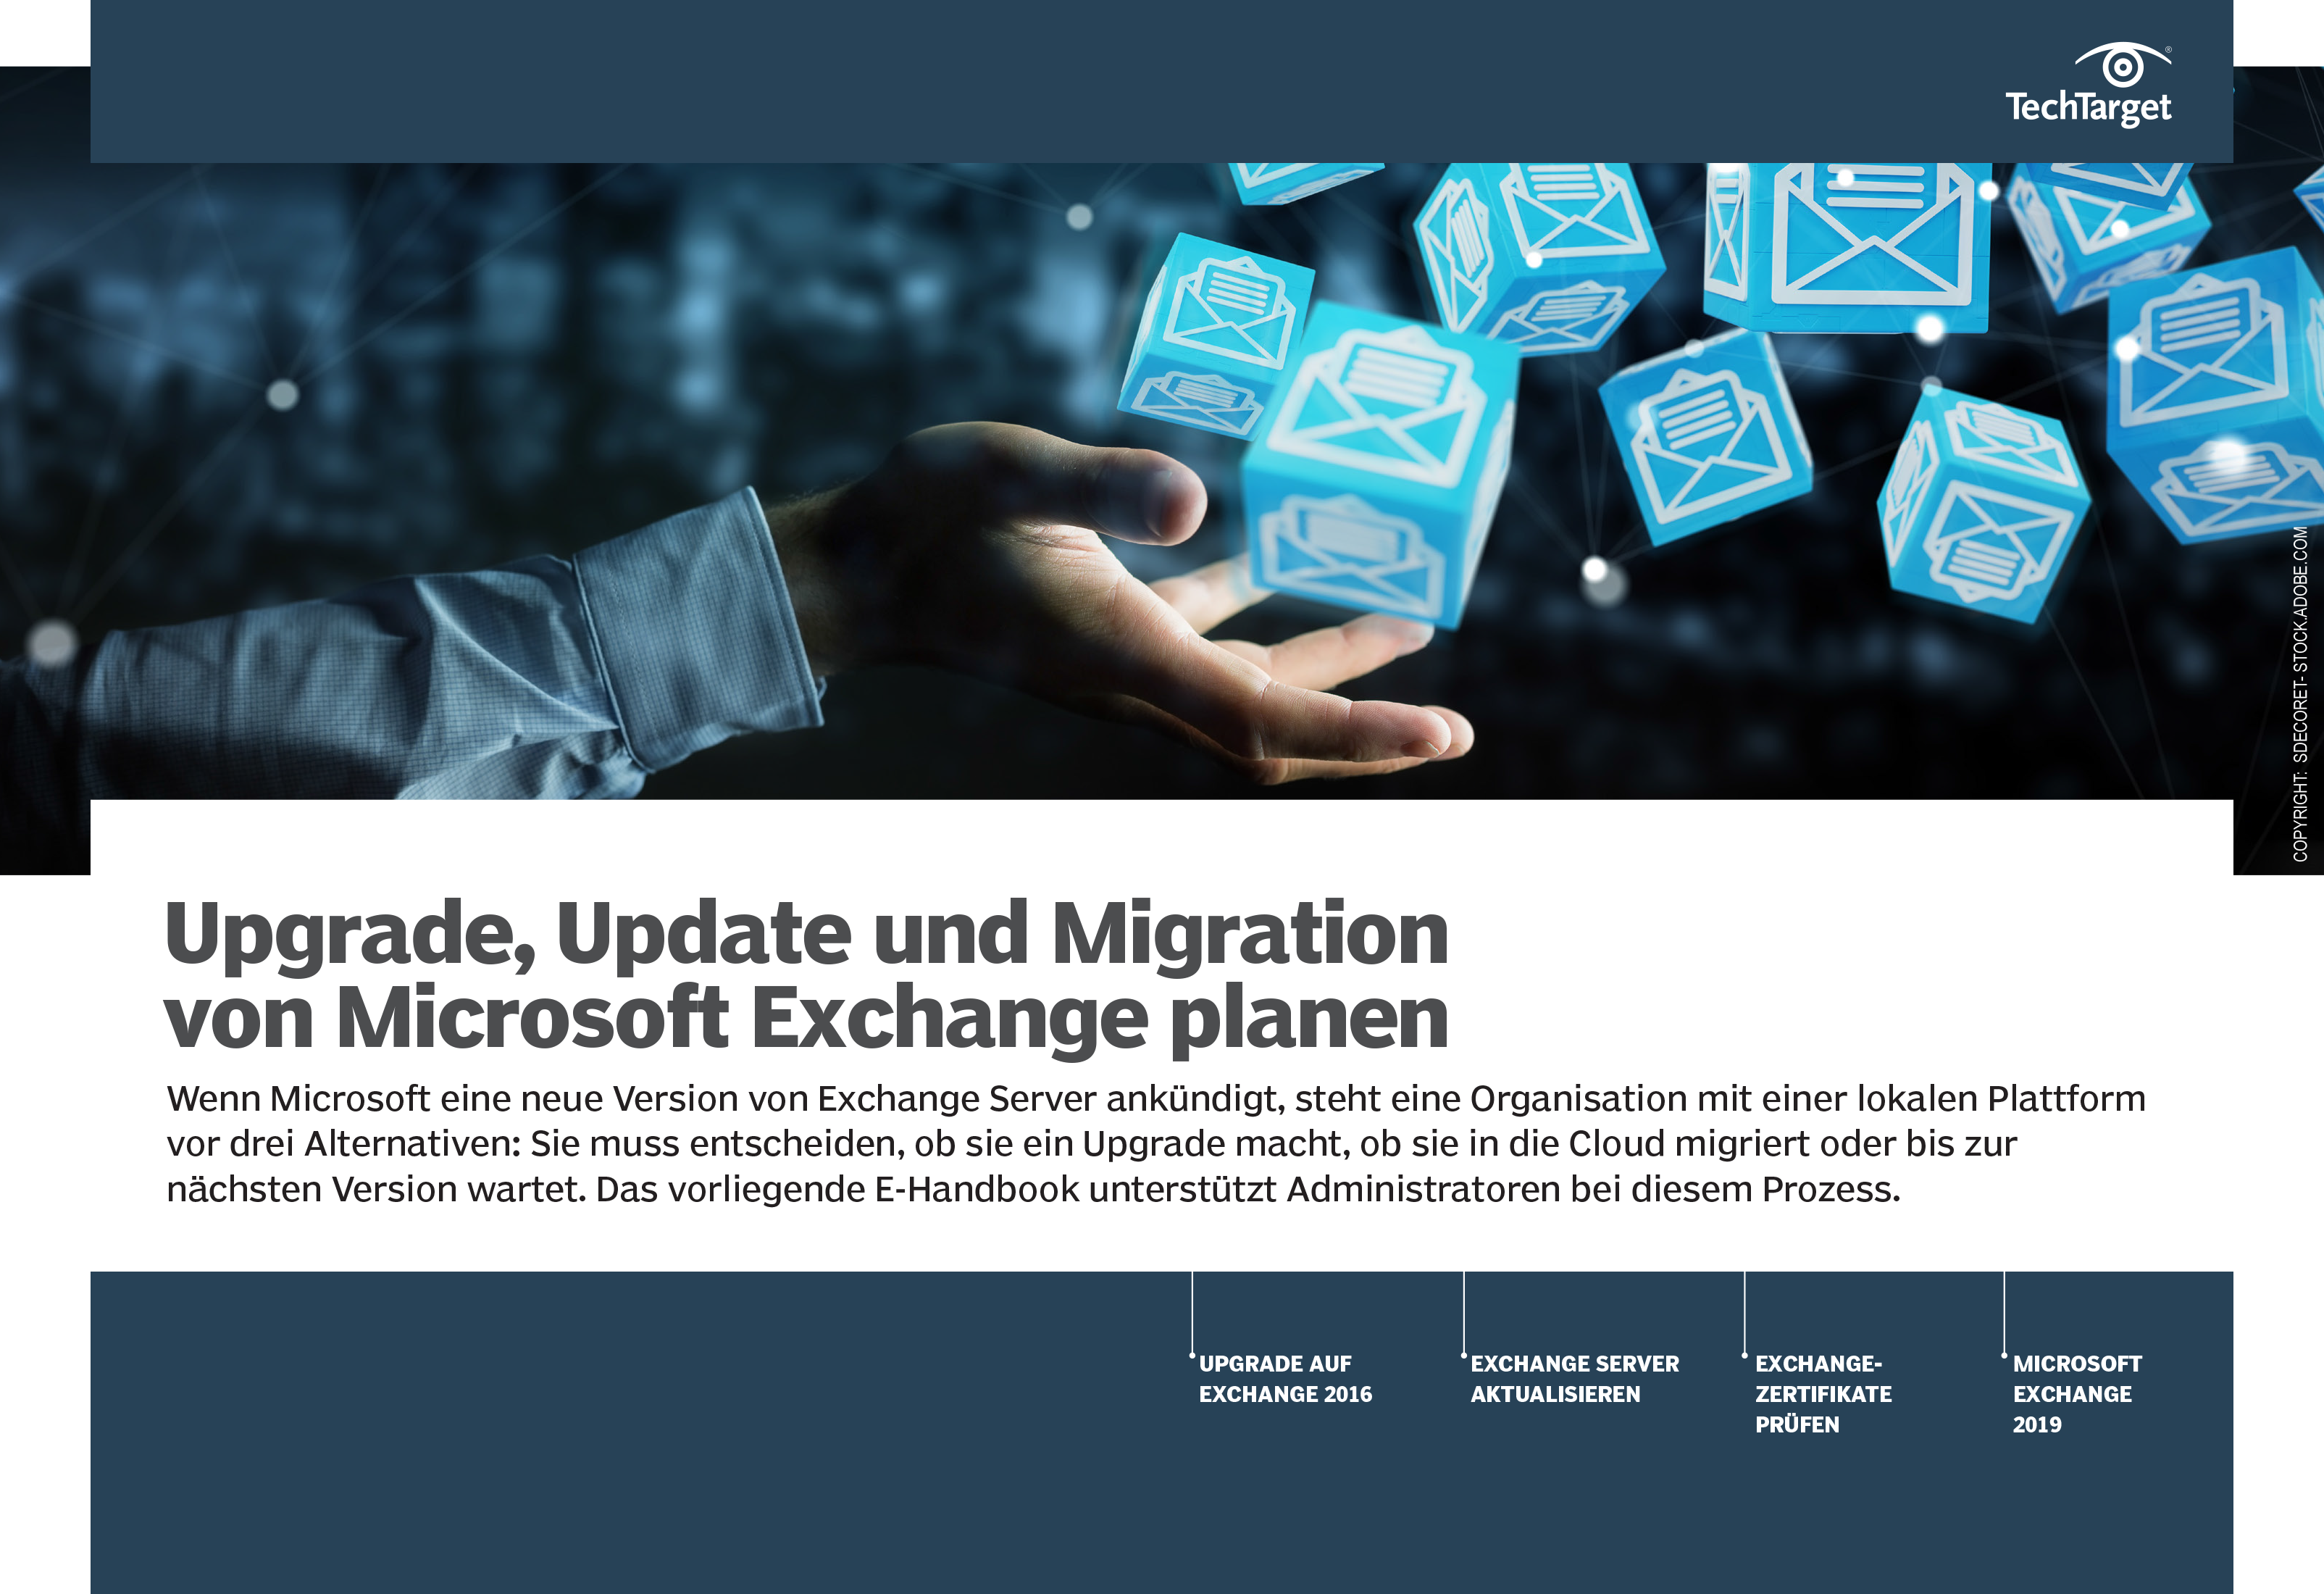 Management Informationen Zu Enterprise Software News Und Tipps